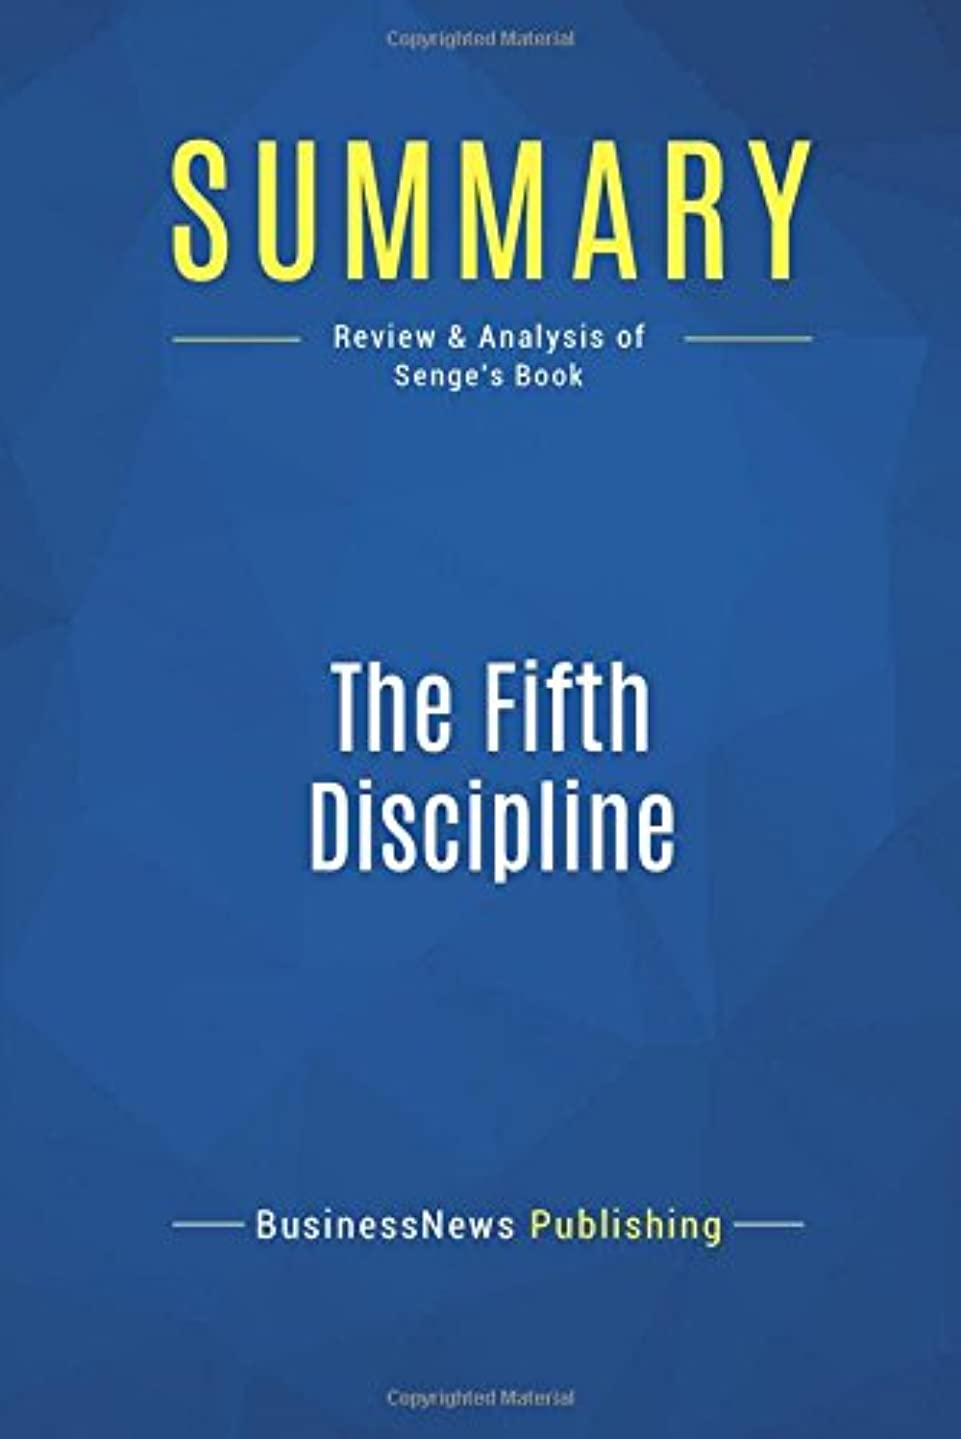 Summary: The Fifth Discipline: Review and Analysis of Senge's Book